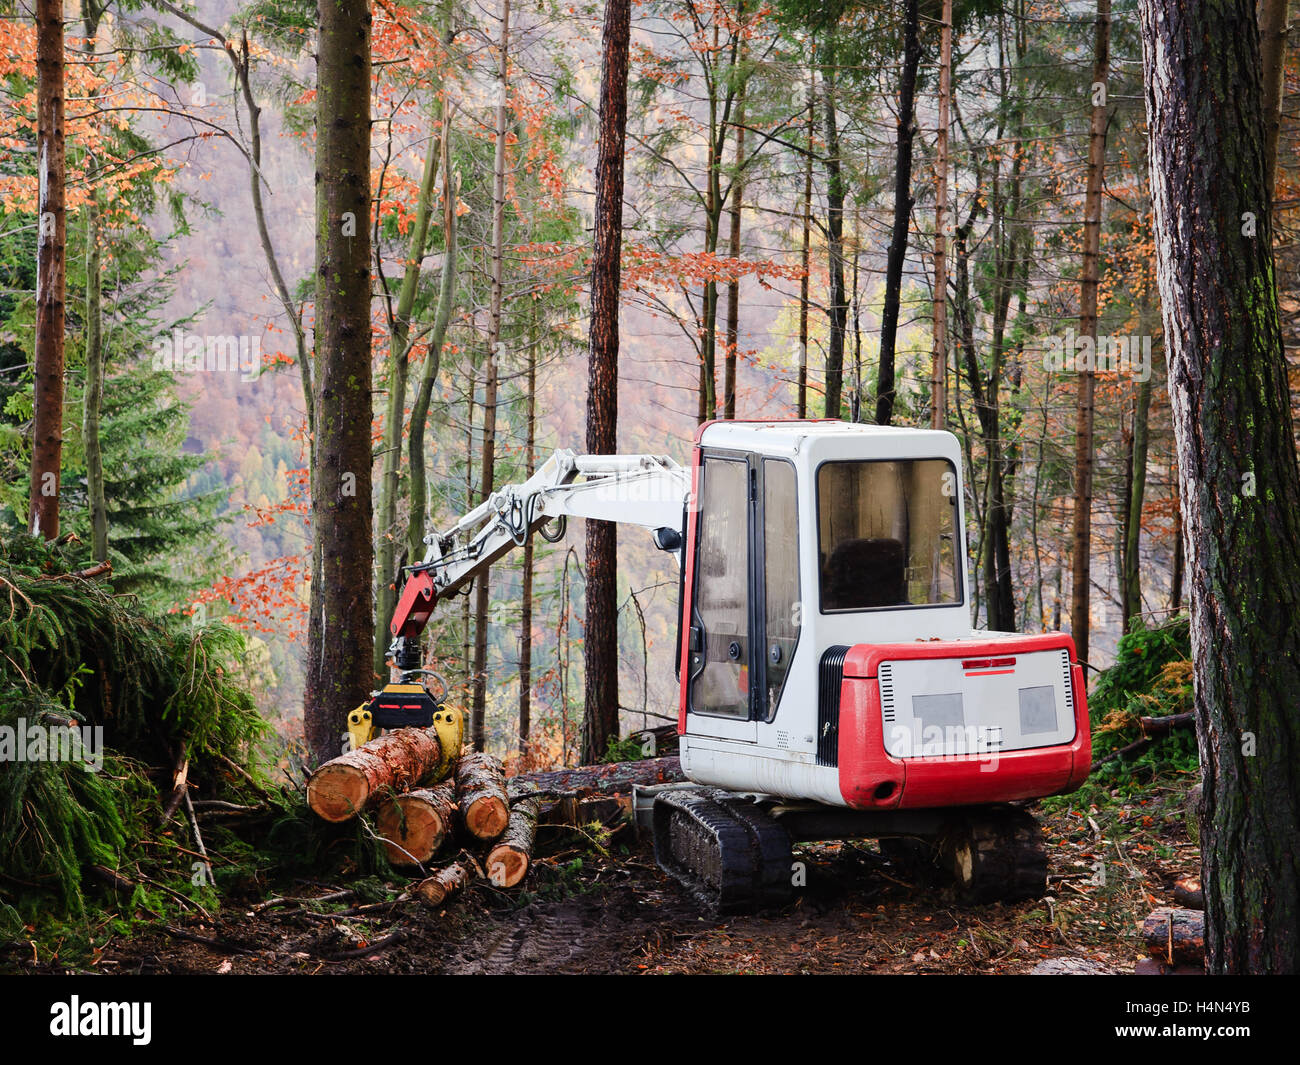 Machine tool operator to work in the forest - Stock Image